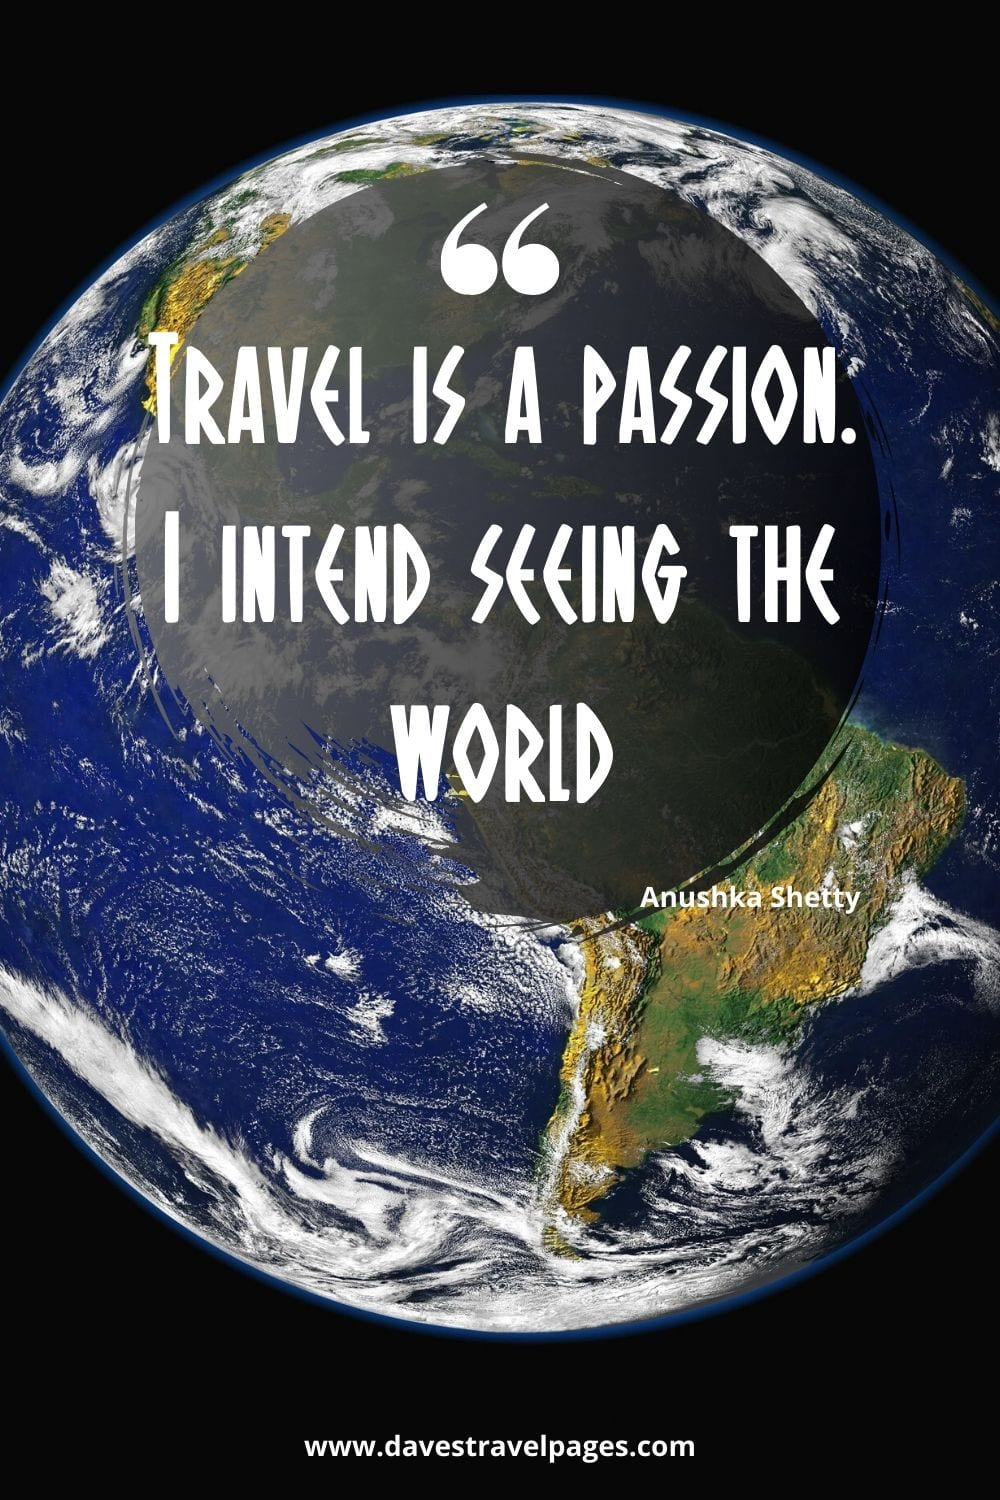 Travel captions: Travel is a passion. I intend seeing the world. Anushka Shetty